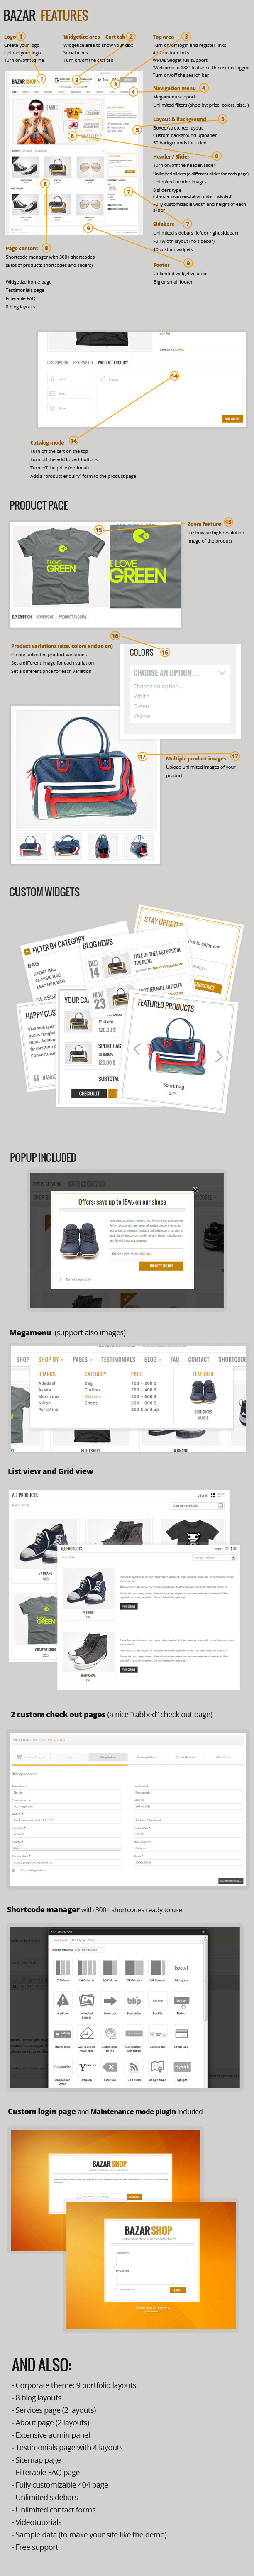 features2 - Bazar Shop - Multi-Purpose e-Commerce Theme